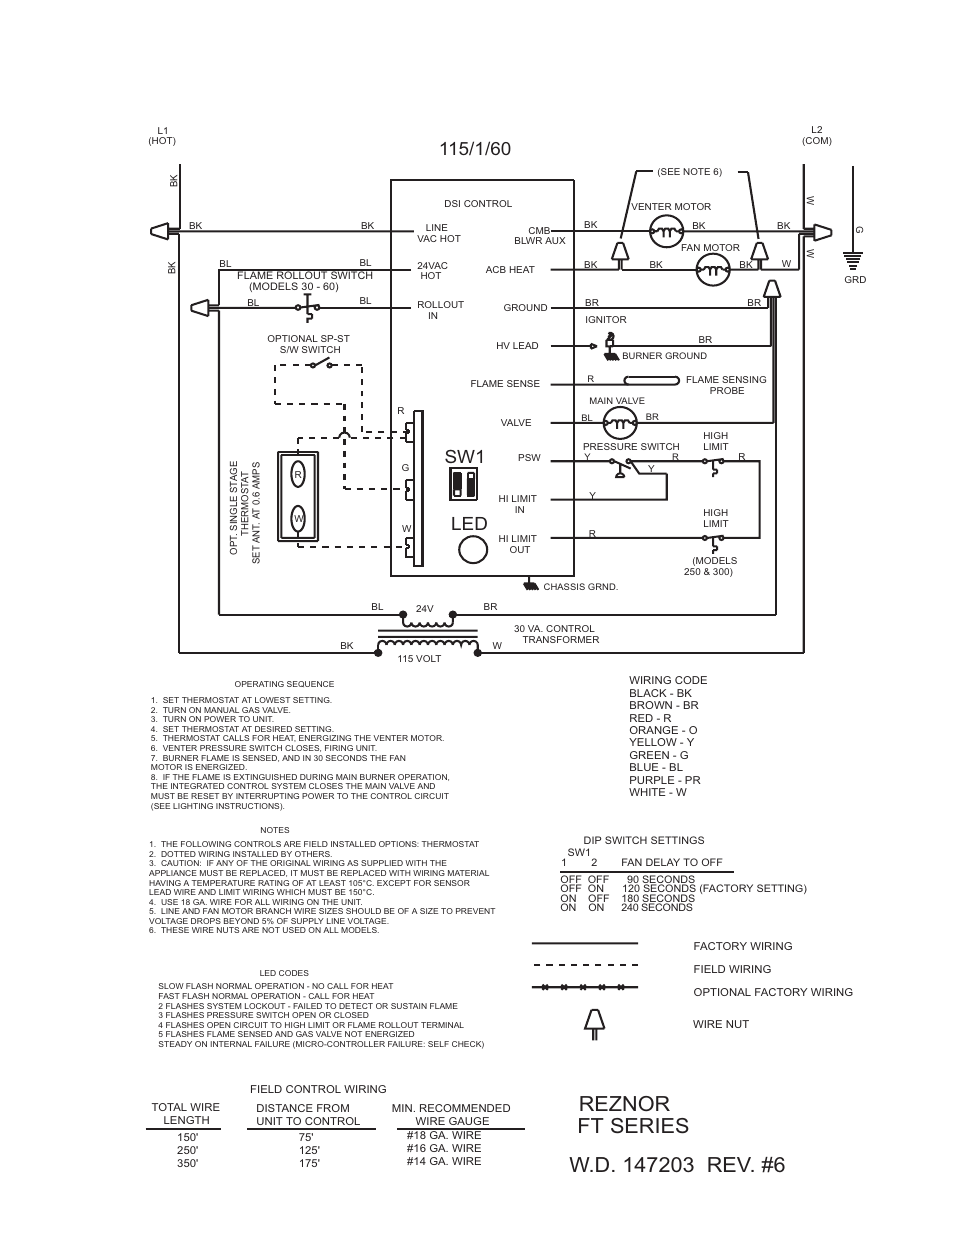 Modine Pdp Wiring Diagram - Somurich.com on